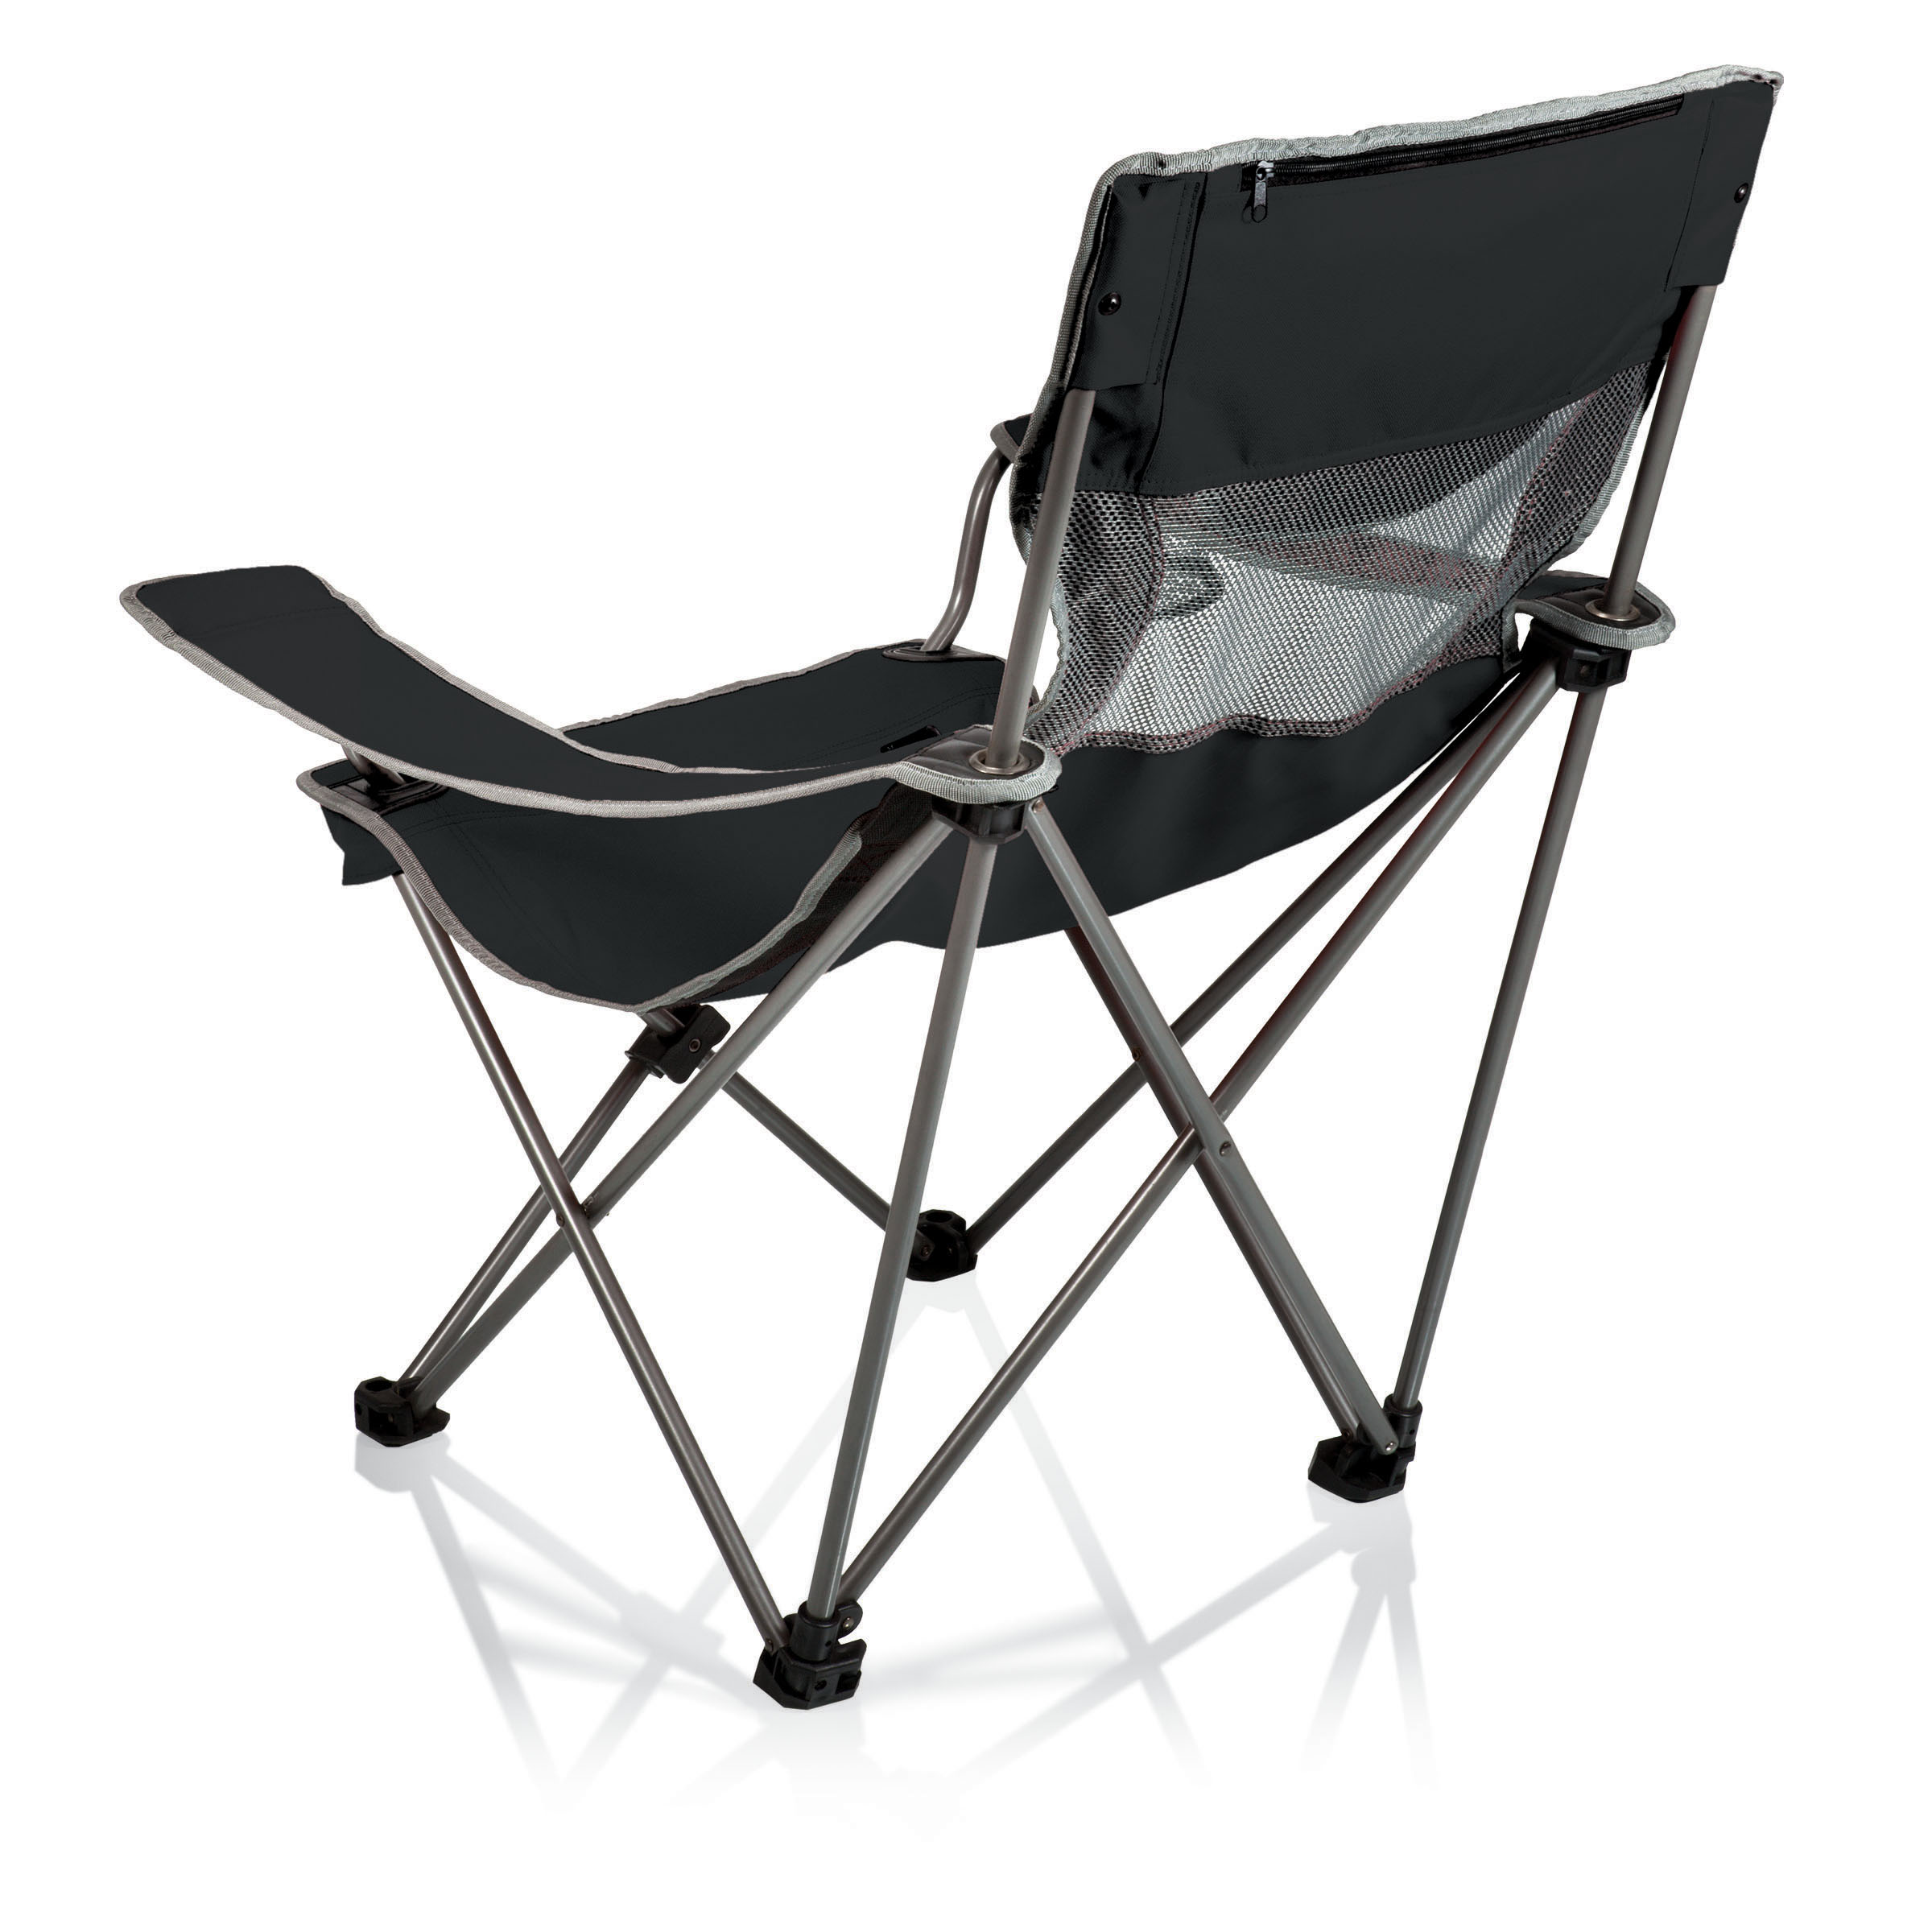 picnic time folding chair specialty office chairs campsite camp black grey